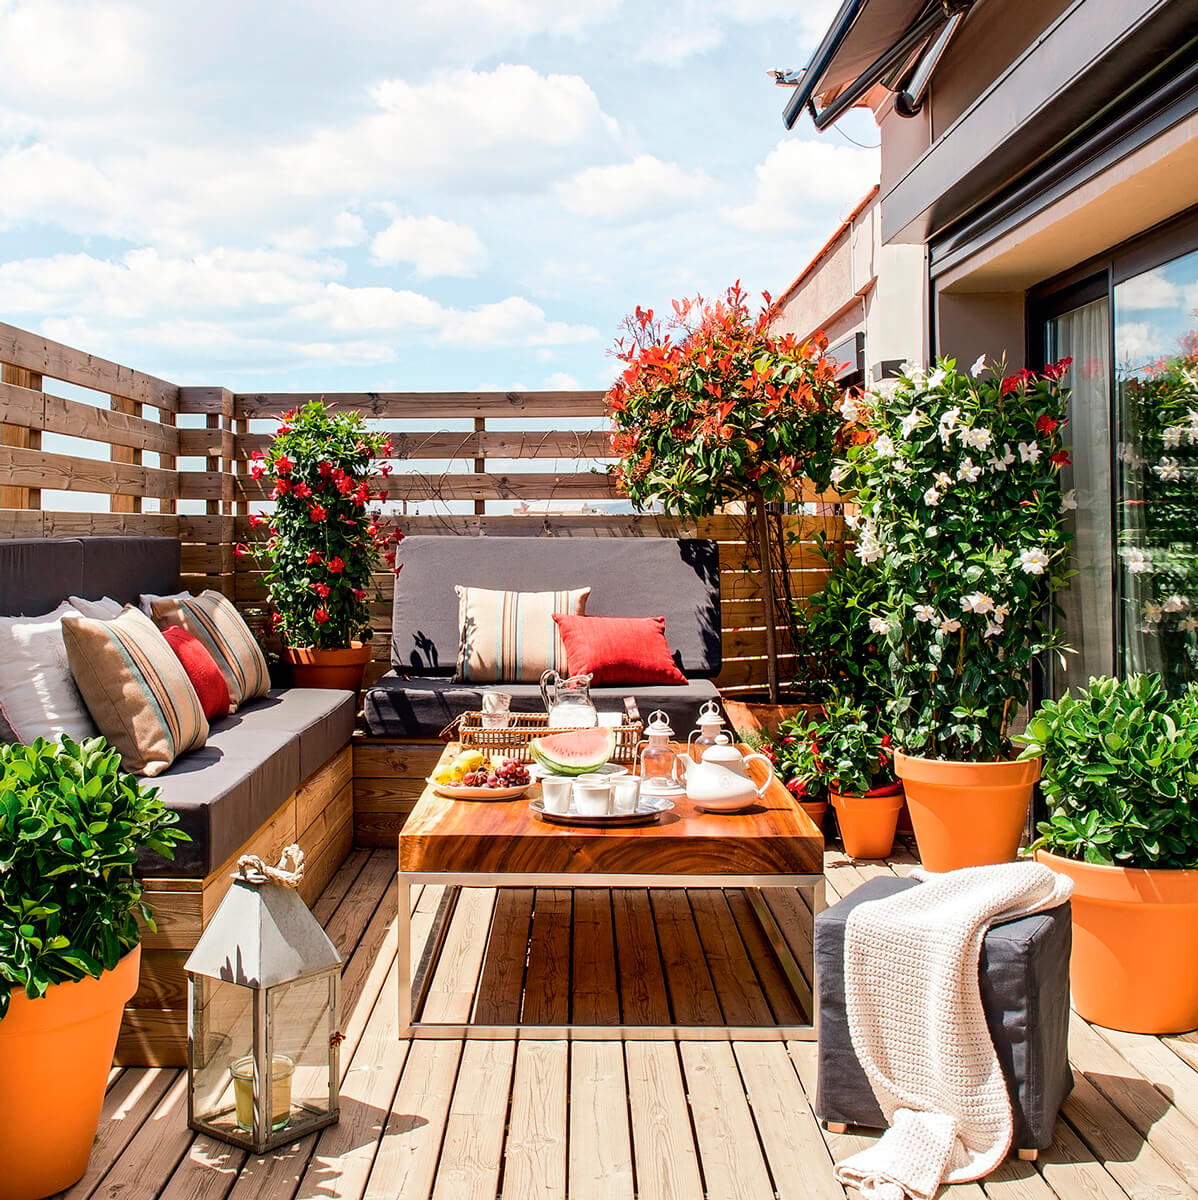 10 ideas para decorar terrazas y balcones handfie diy for Mesas de terraza baratas